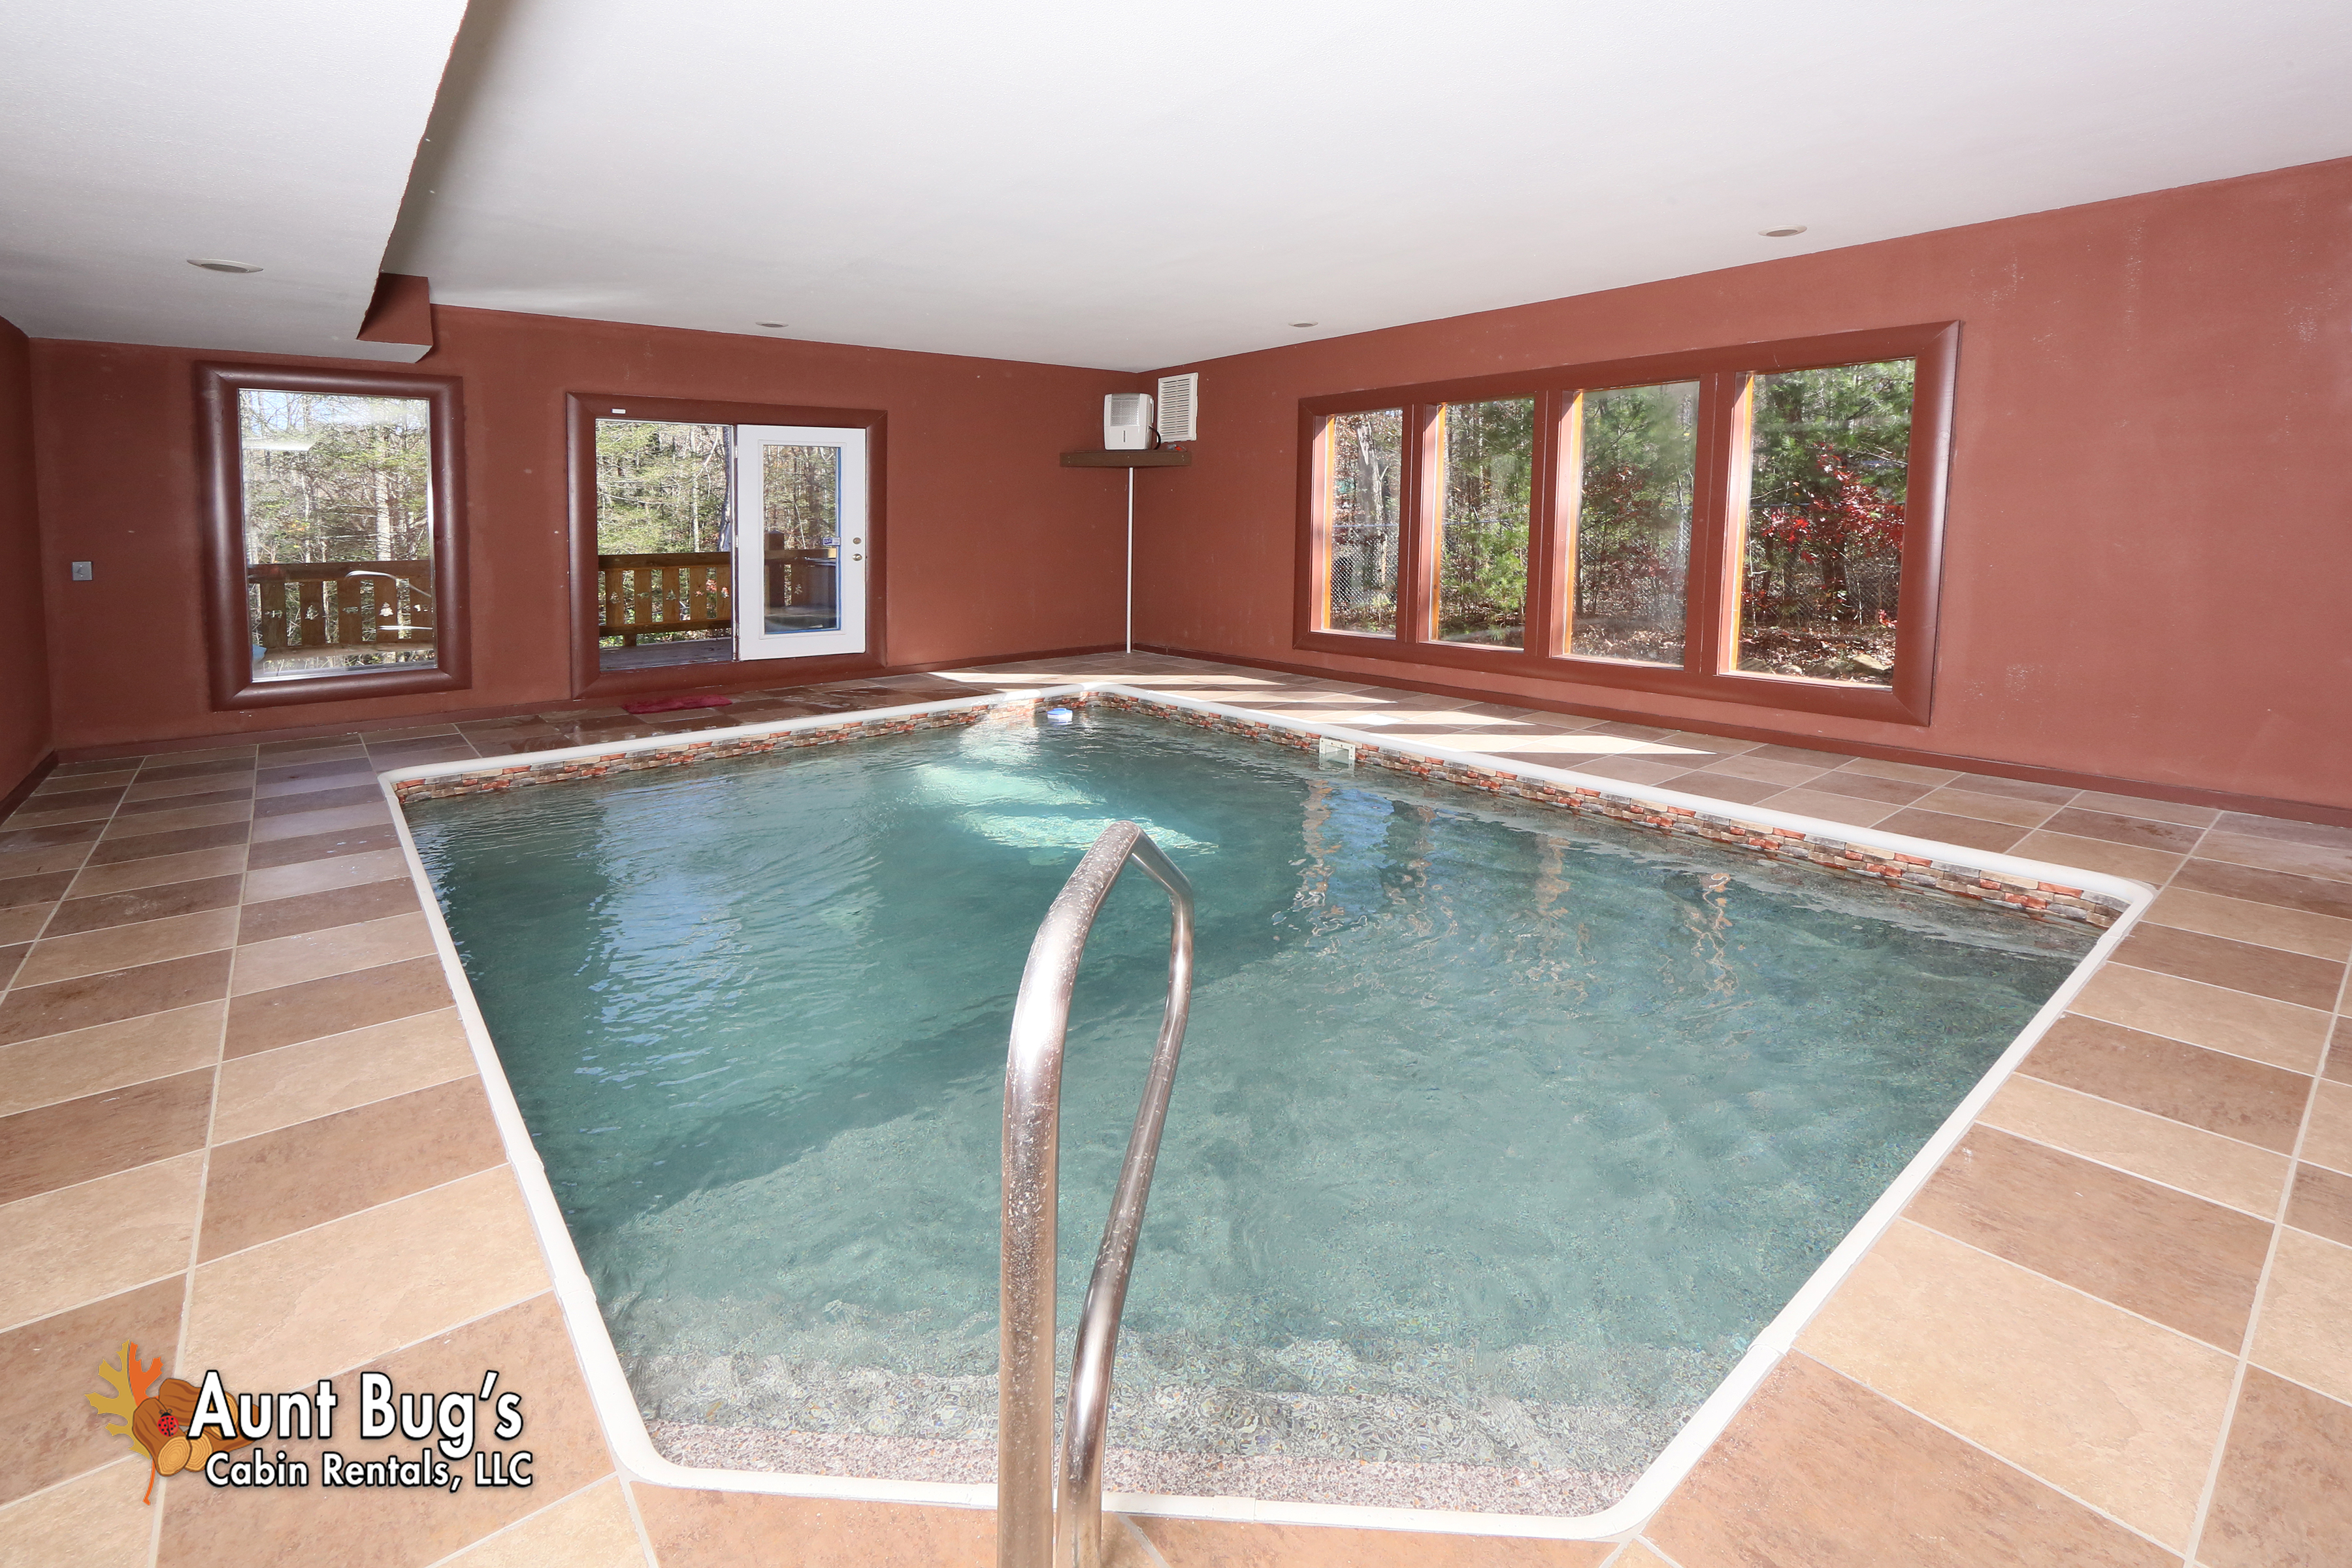 private near luxury pools cabins and chalet fireside forge me pool gatlinburg timber curtain georgia valley tn sevierville theater tennessee of ohio the rentals bedroom tops swimming smoky pigeon with wears indoor cabin room in vacation north